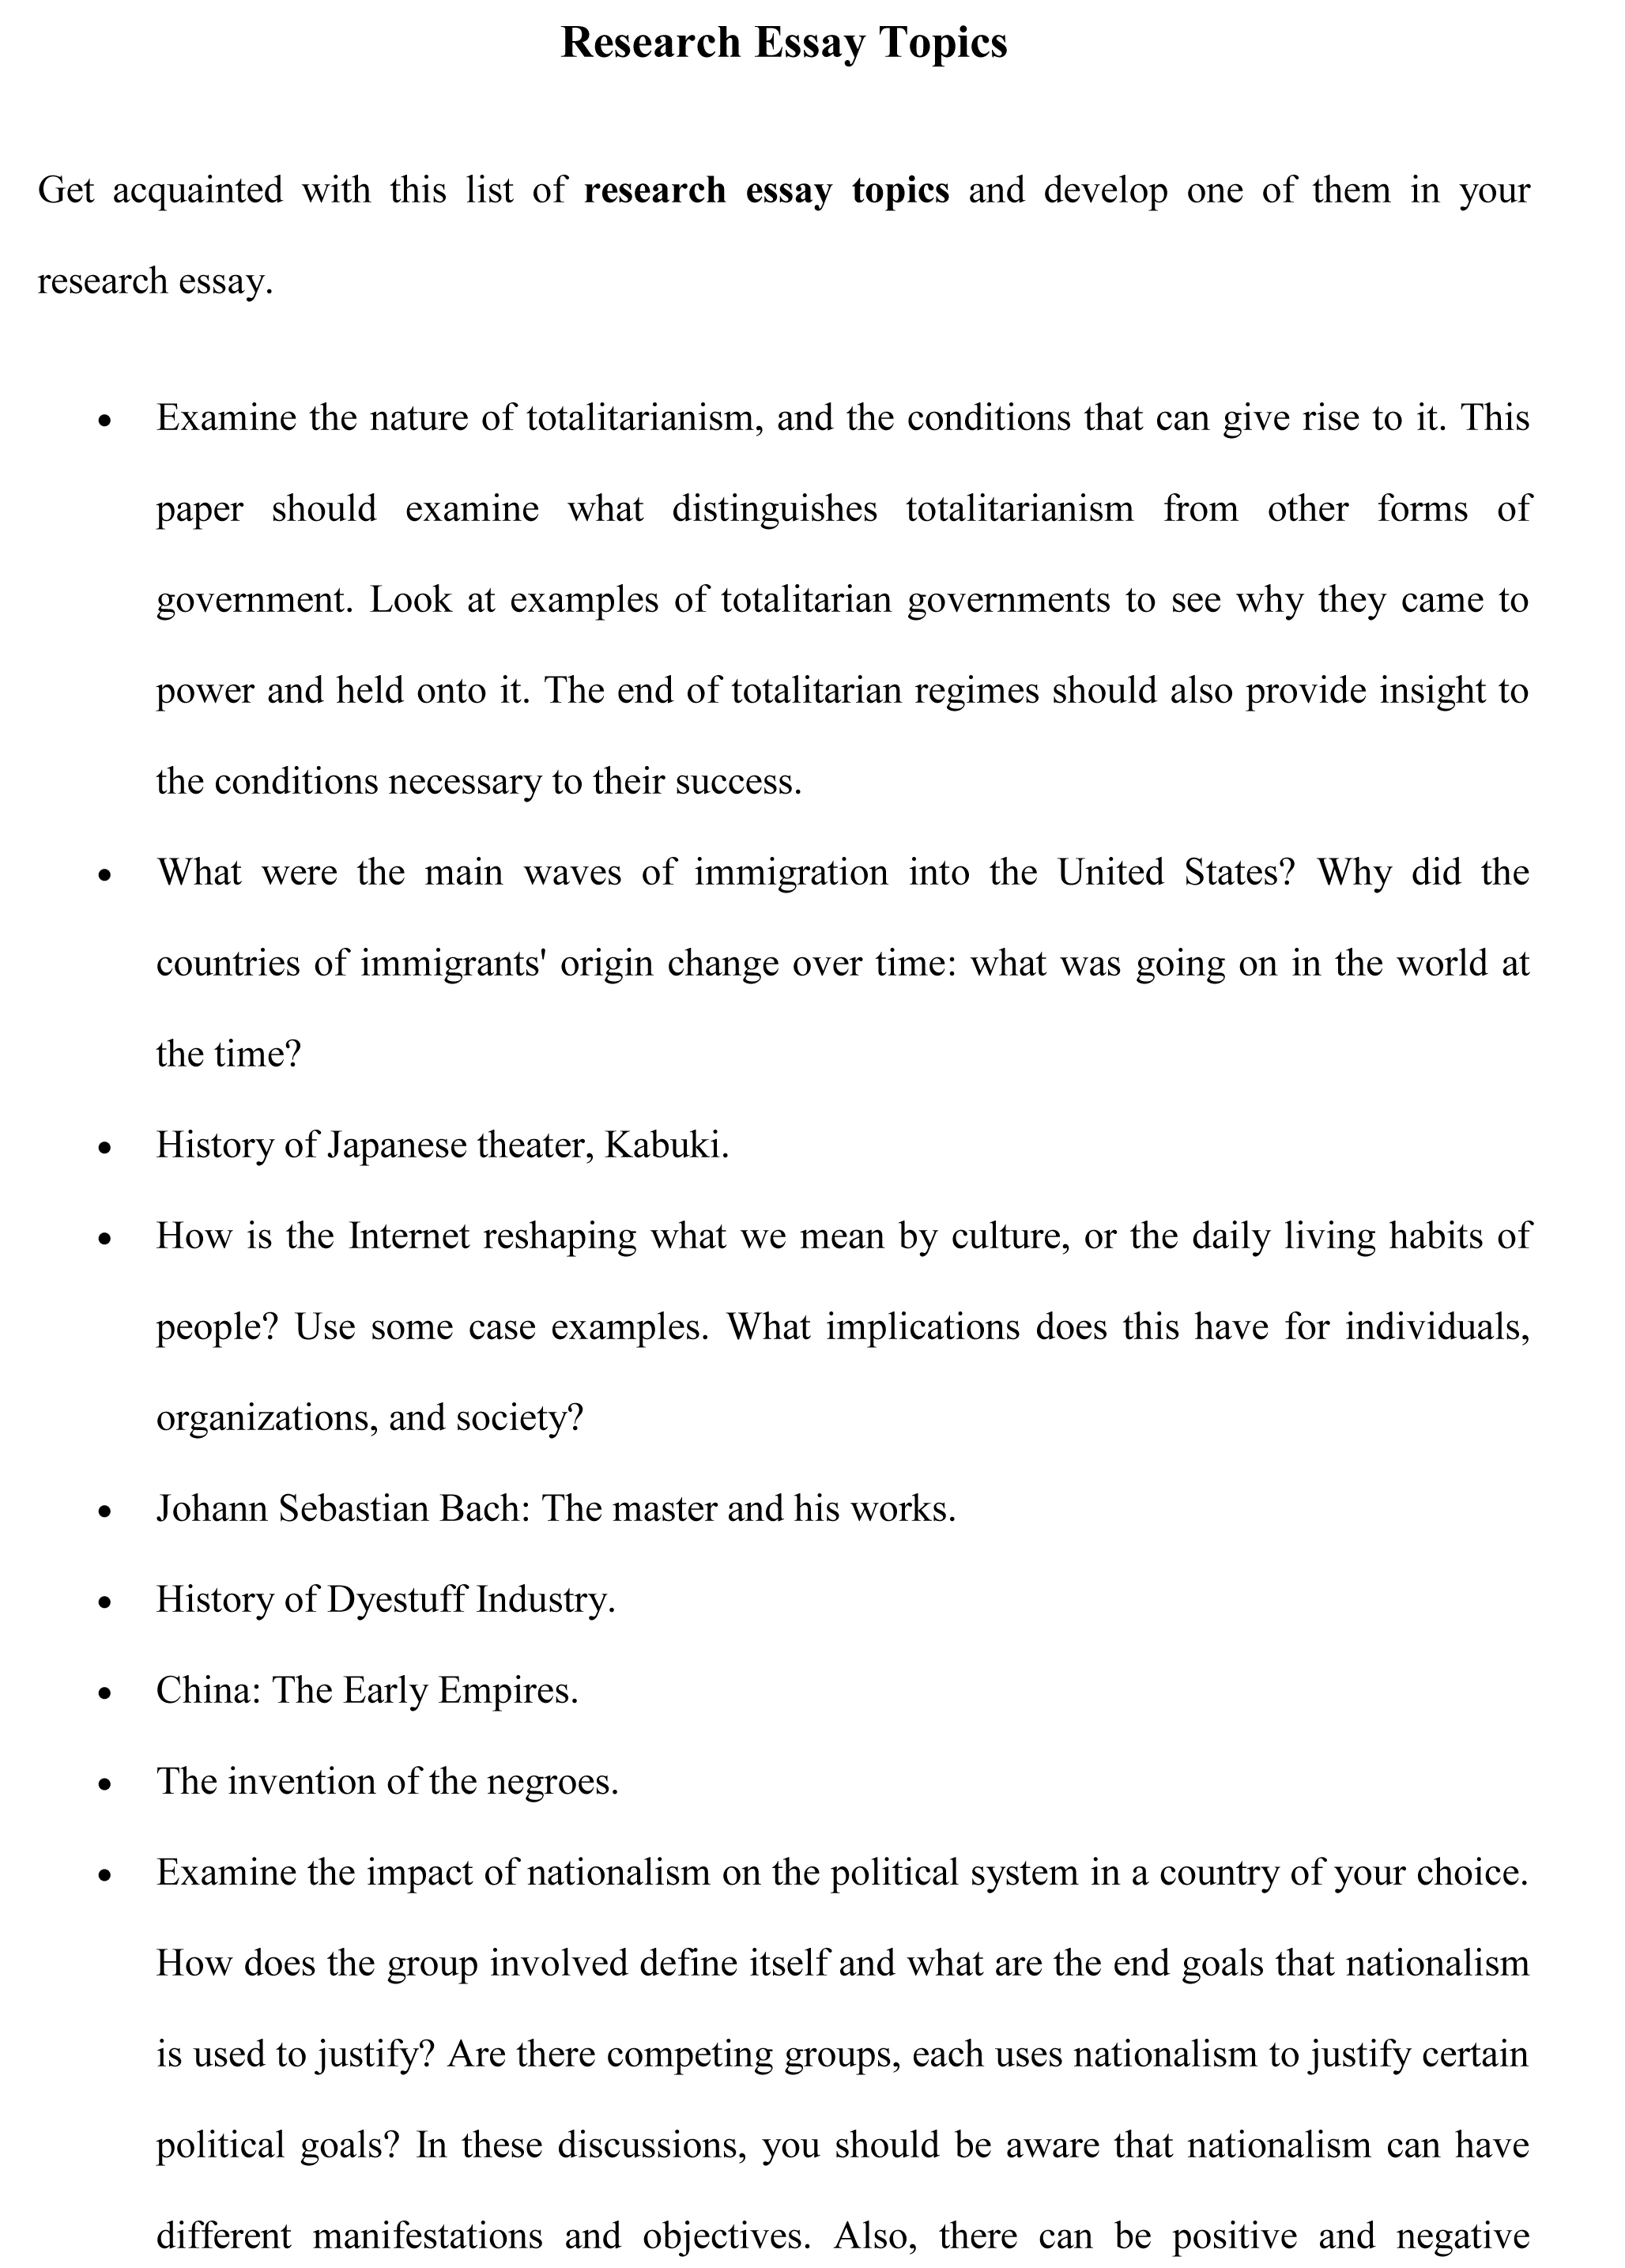 007 Research Essay Topics Sample Paper Good For College Dreaded English Class Full